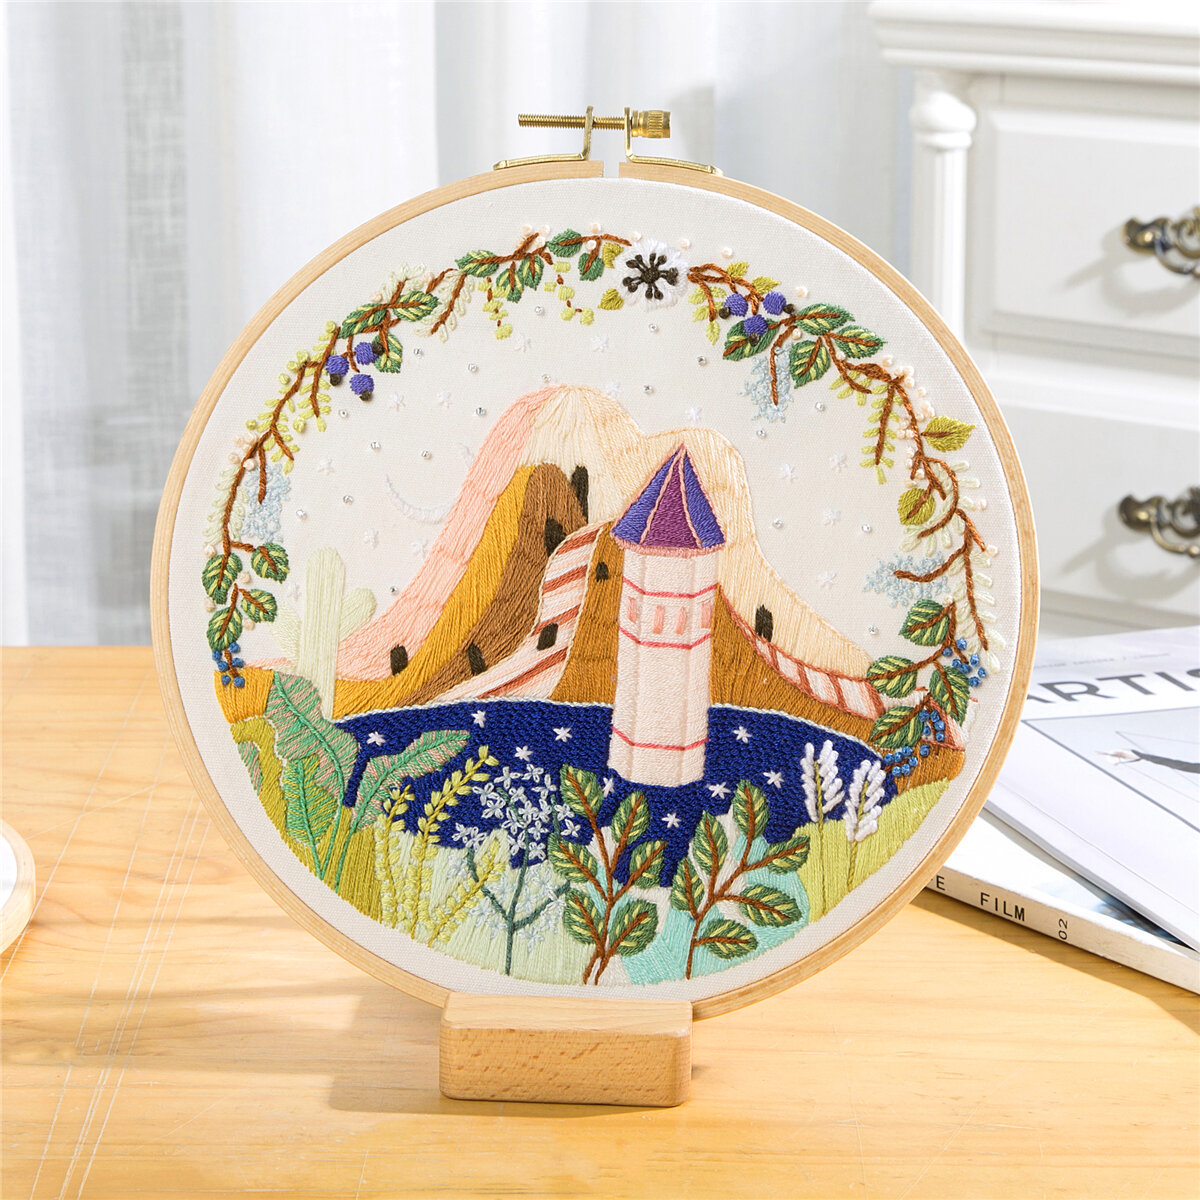 DIY Landscape Flower Embroidery Kit With Hoop Needlework Scenery Cross Stitch Handcraft Gift Art Home Decor